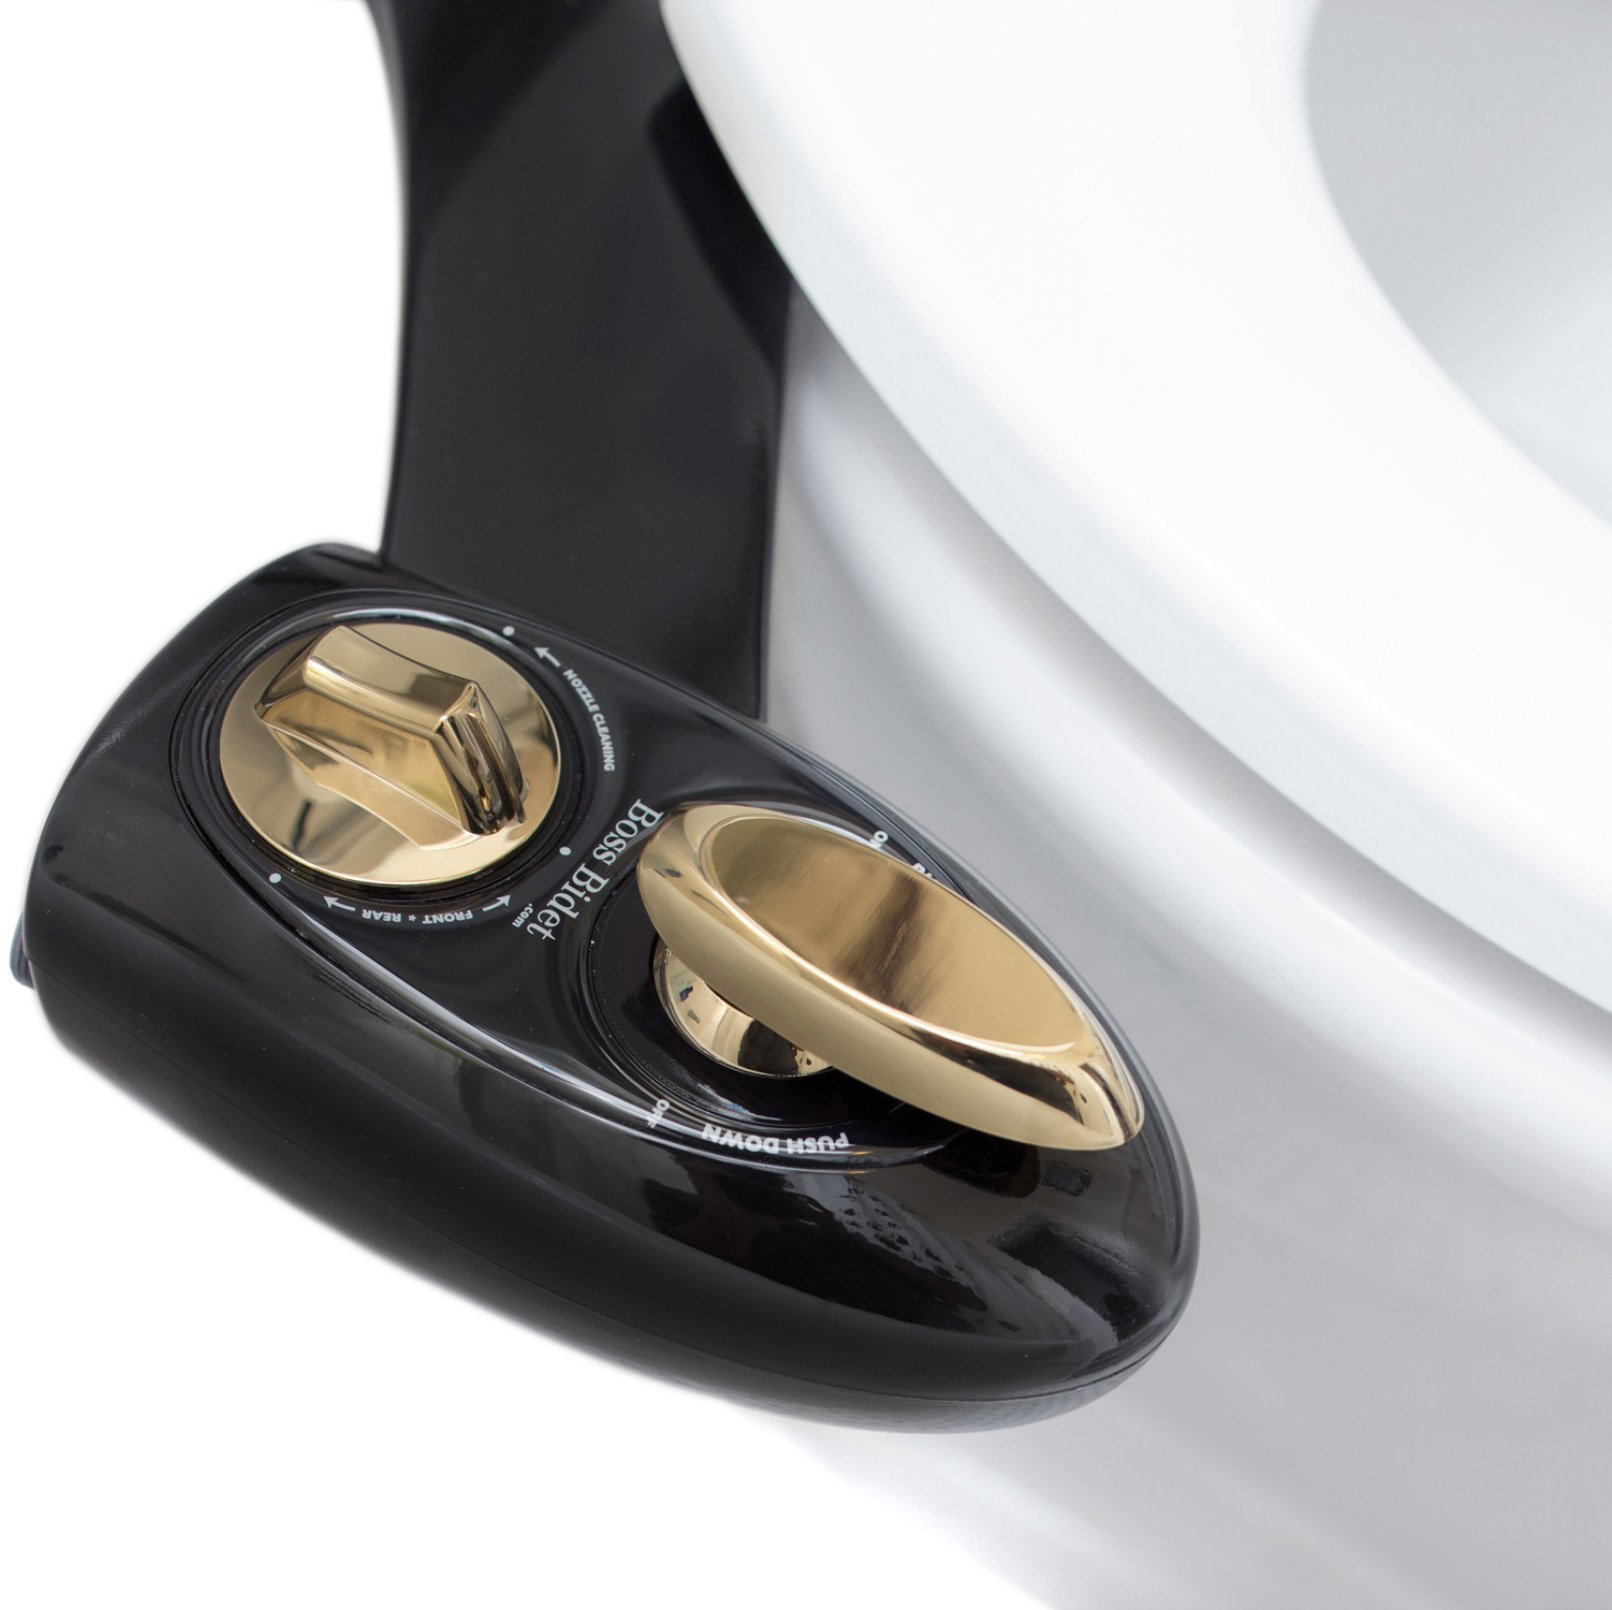 BOSS BIDET BOLD Toilet Attachment | Cleans Your Rear | Warranty - Lifetime | 30 Day Money Guarantee | Dual Nozzle | Self Cleaning Sprayer Feature | Attaches in 15 minutes | Black & Gold